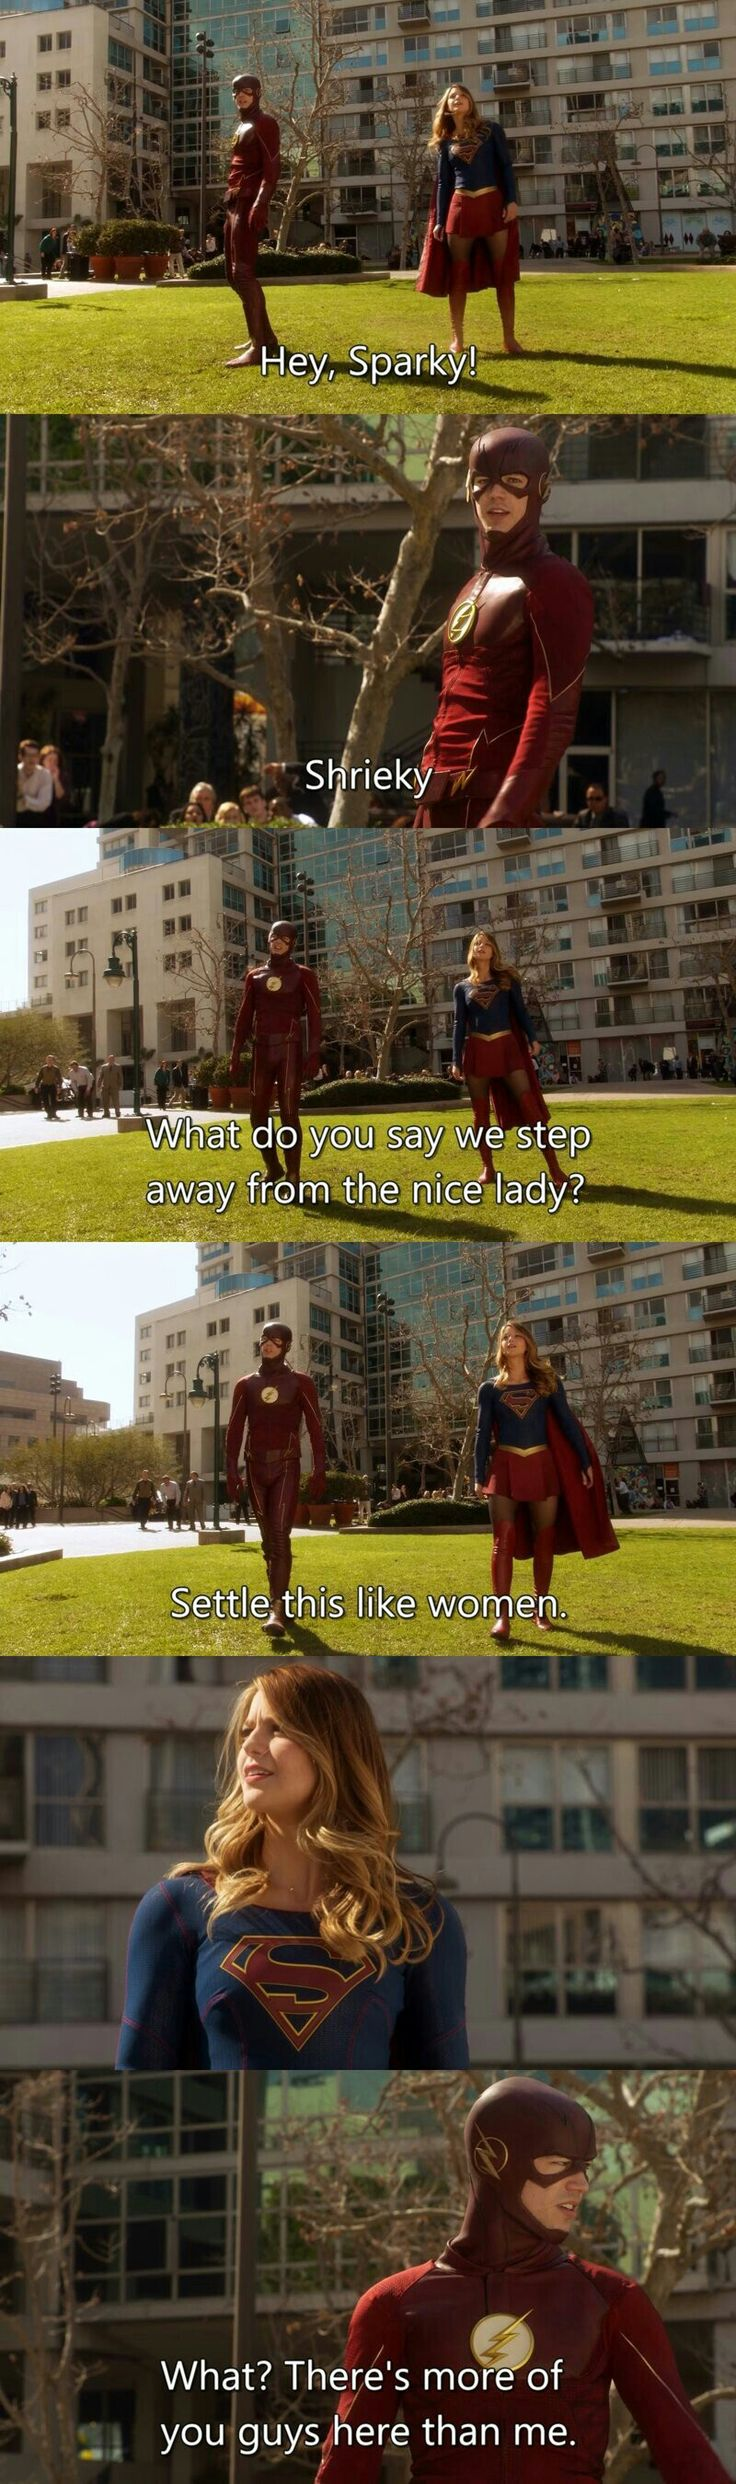 Supergirl 1x18 This crossover was epic, I love Flash